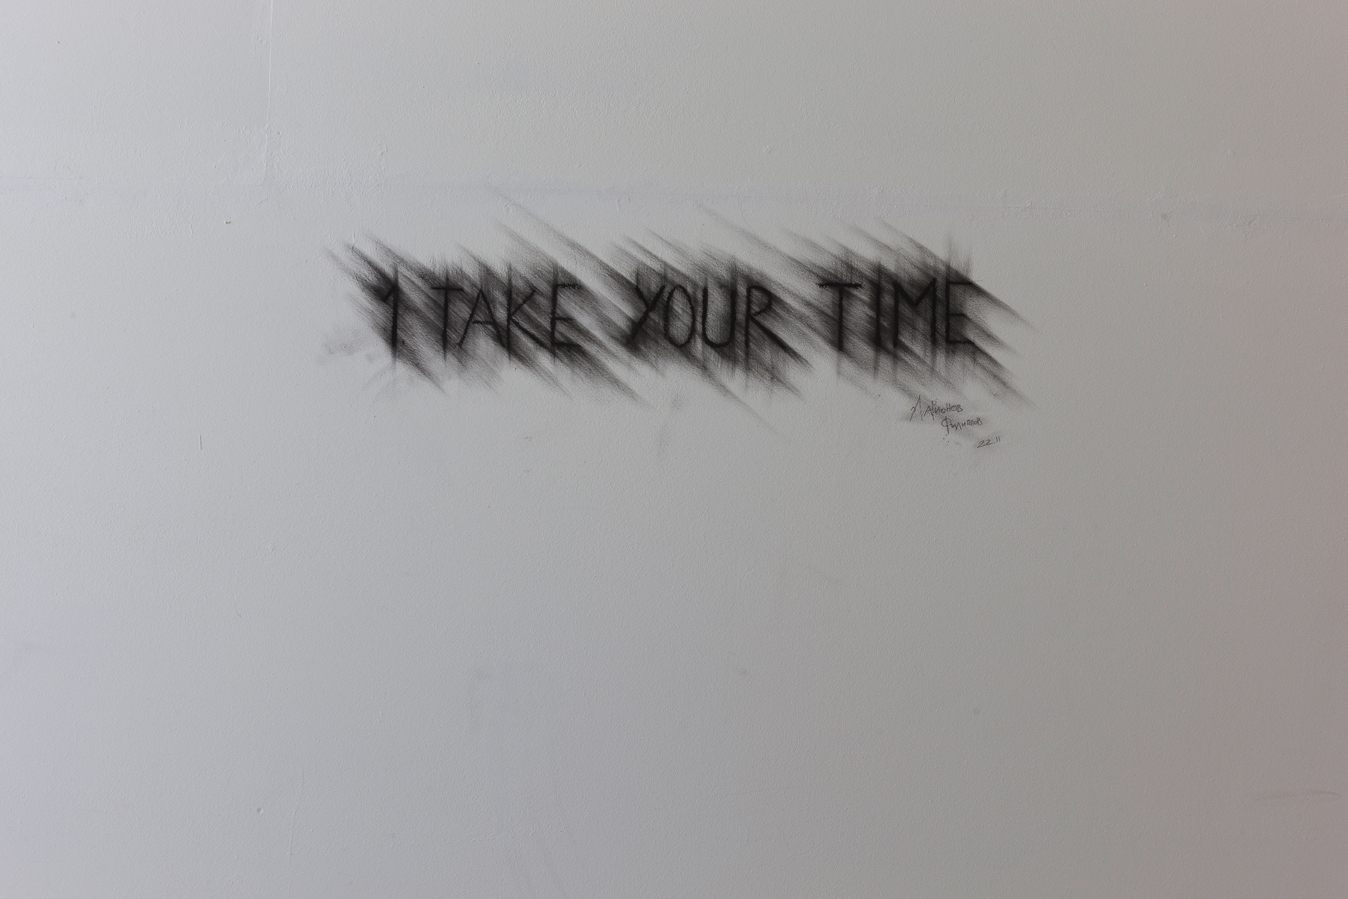 Take_Your_Time_Expo_020